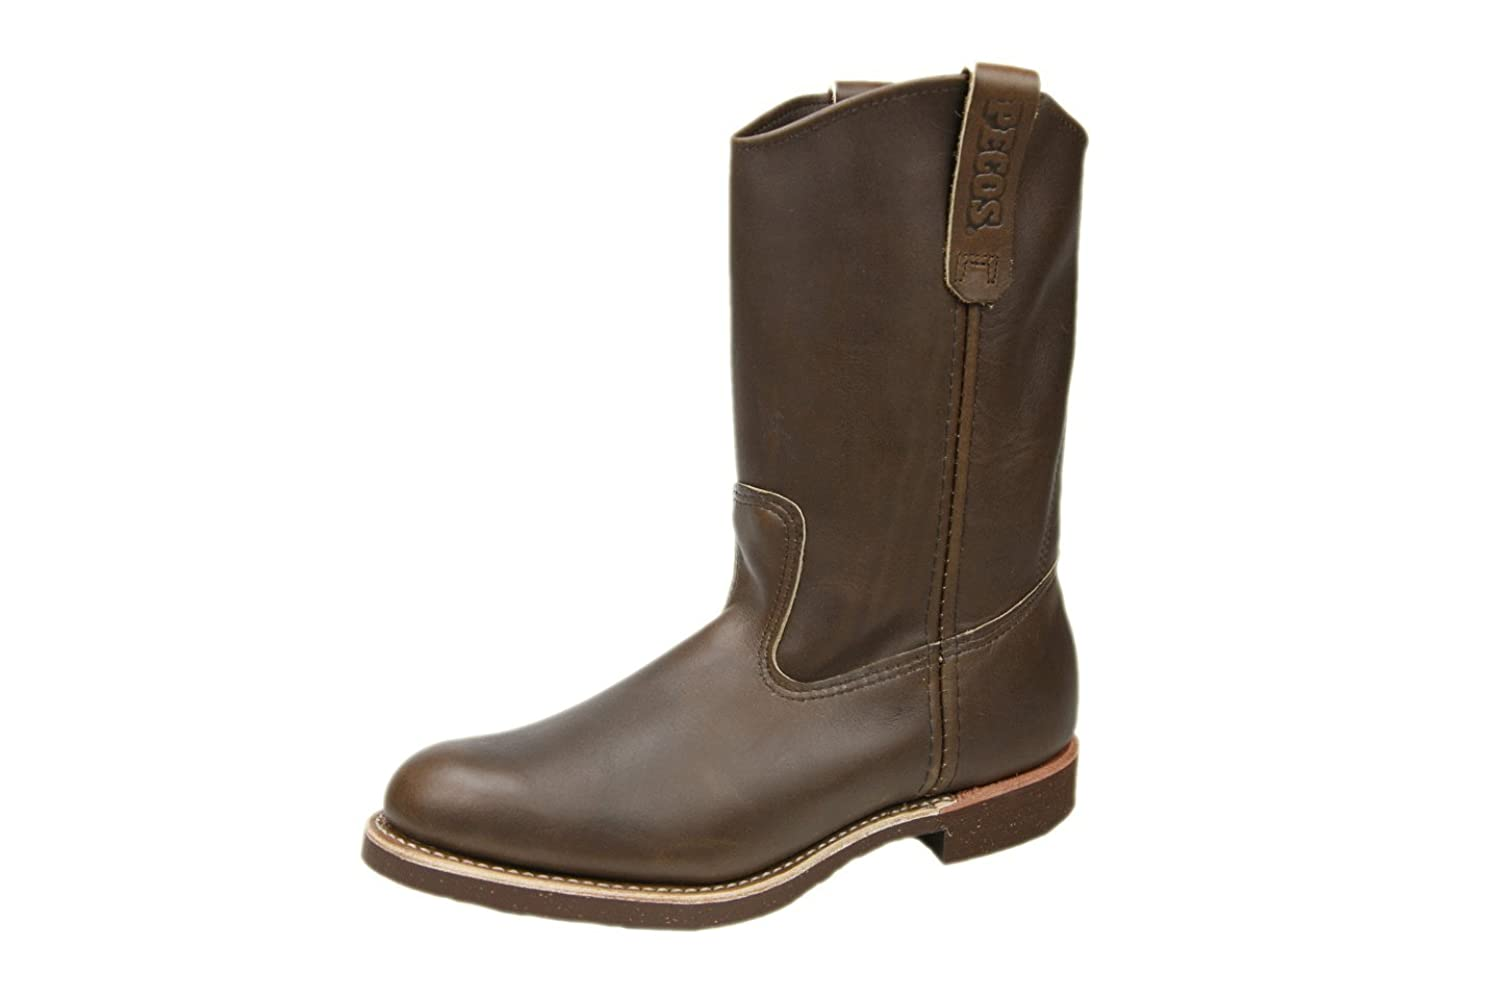 429db9944f Red Wing 1178 Men s 11-inch Pull-on Boot well-wreapped - appleshack ...